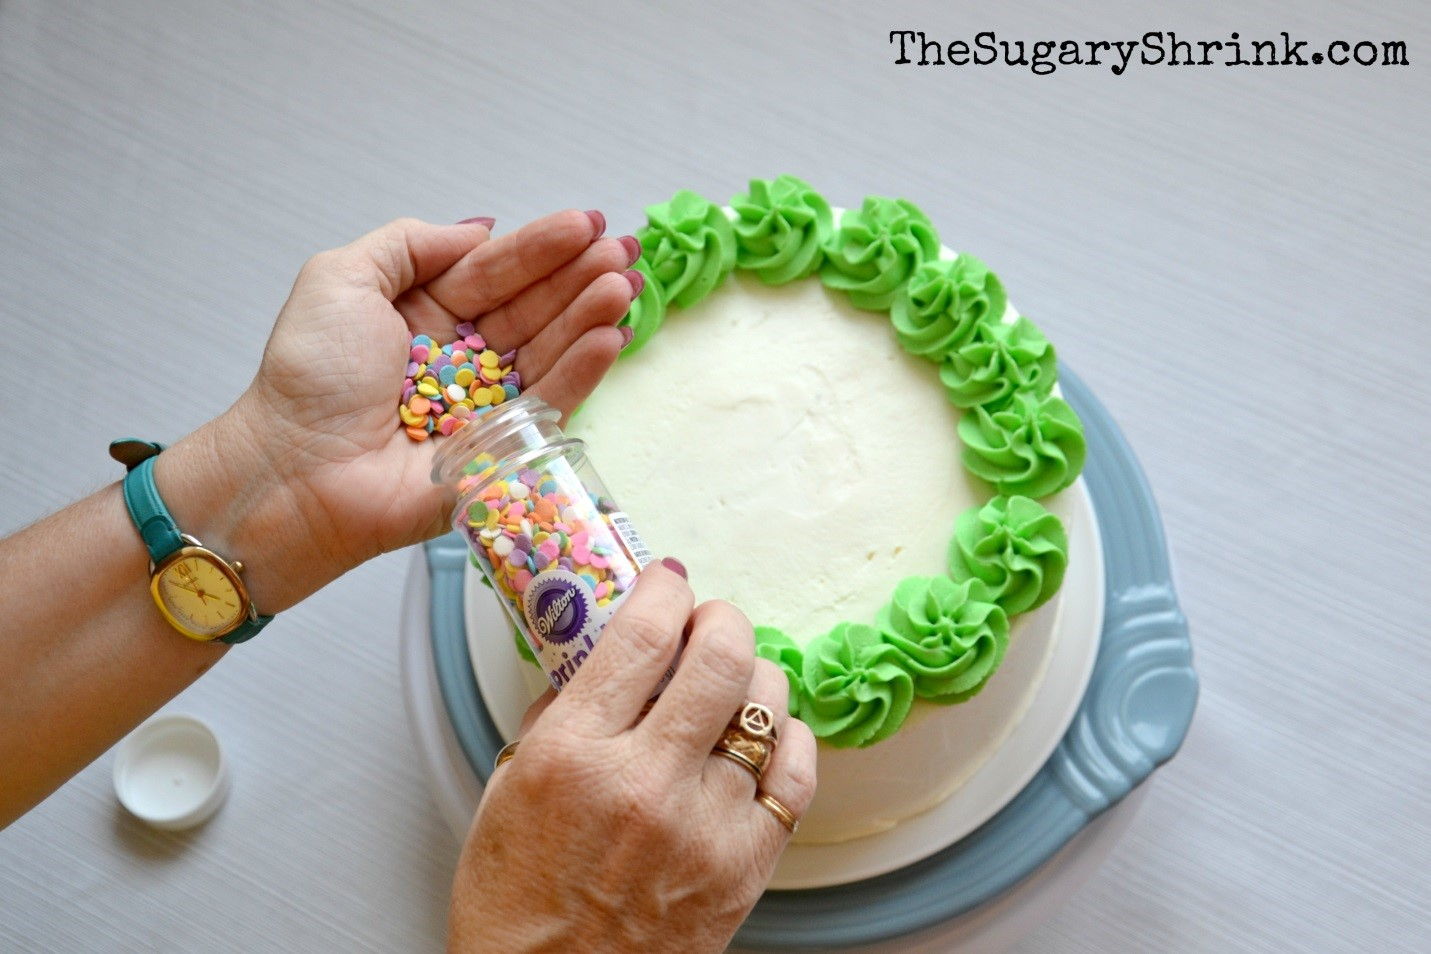 What Piping Tip To Use For Outlines Of A Cake